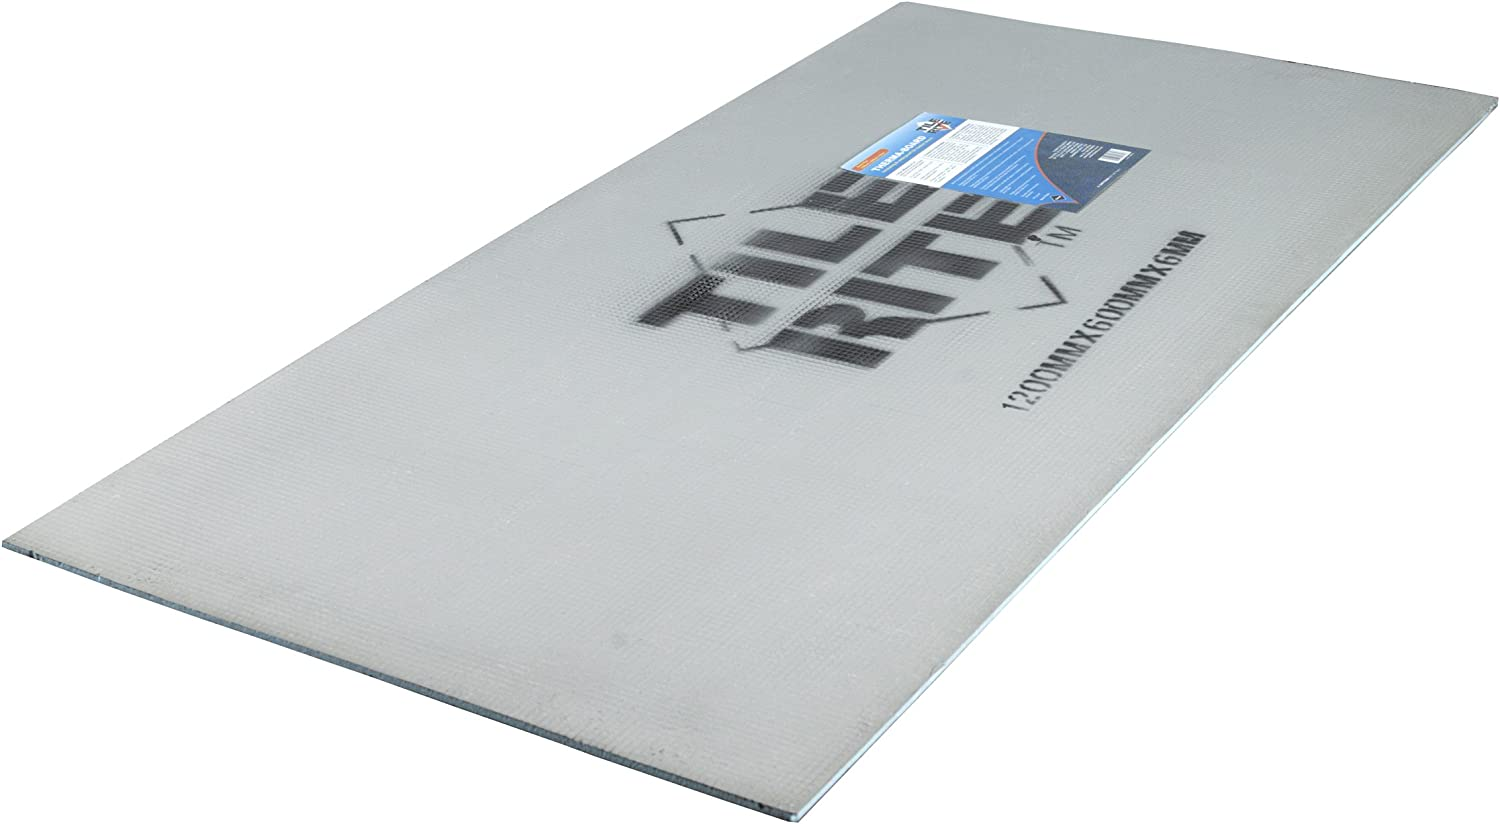 TILE RITE THB810 6 mm Thermaboard Tile Backer Board 1200 x 600 x 6 mm, Pack of 15, Grey, Set of 15 Pieces